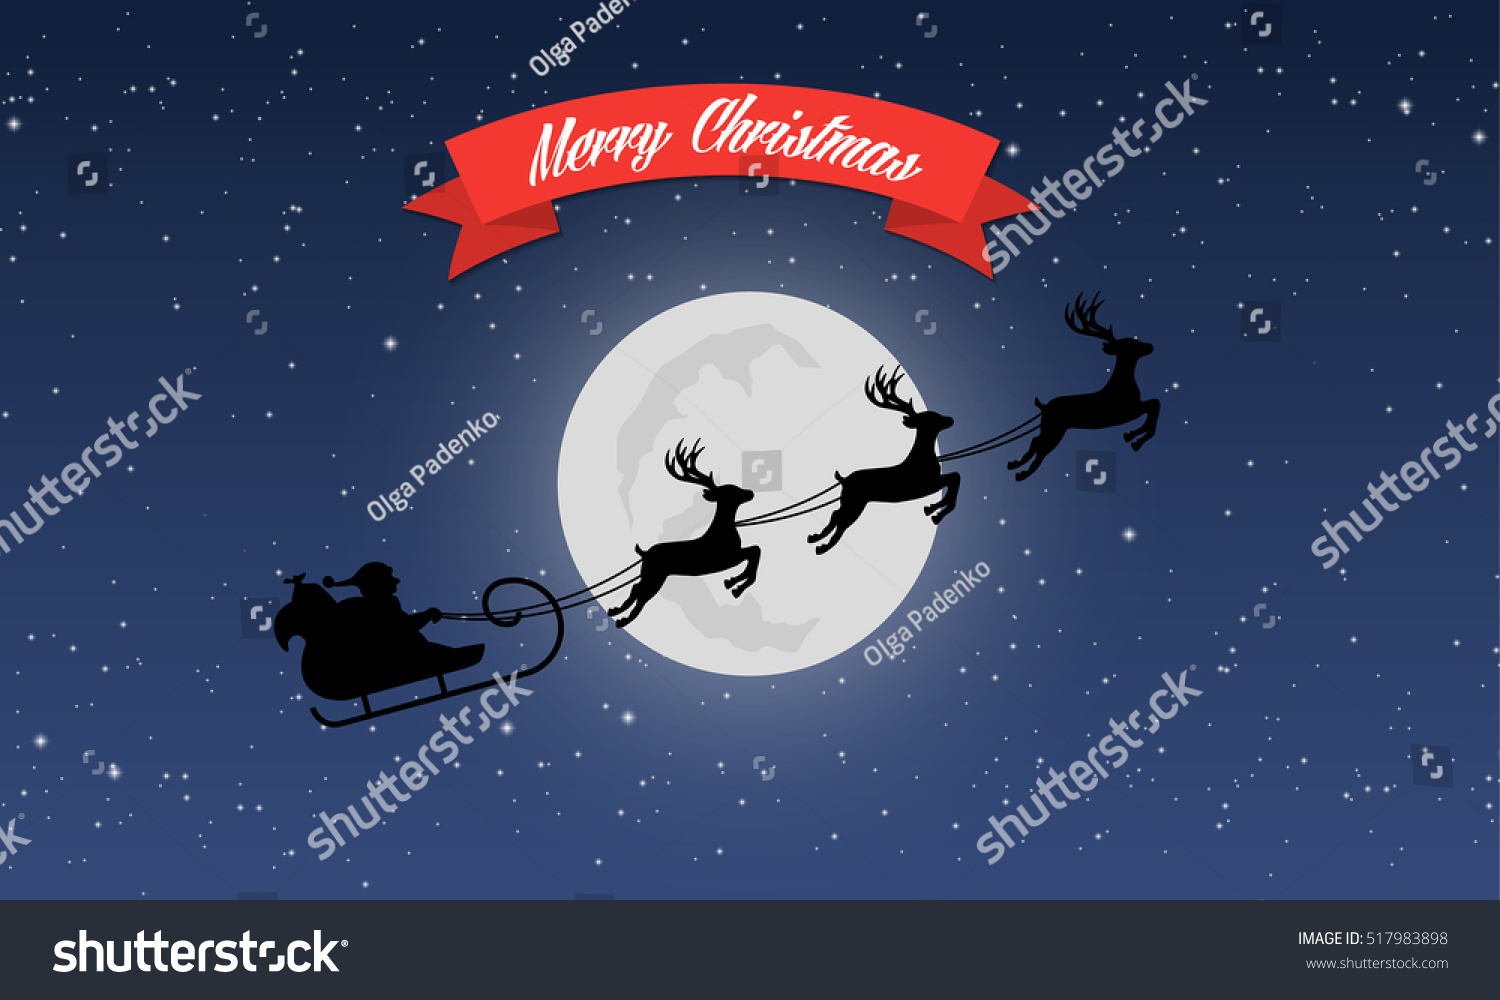 Merry Christmas Greeting Card Santas Sleigh Stock Vector Hd Royalty